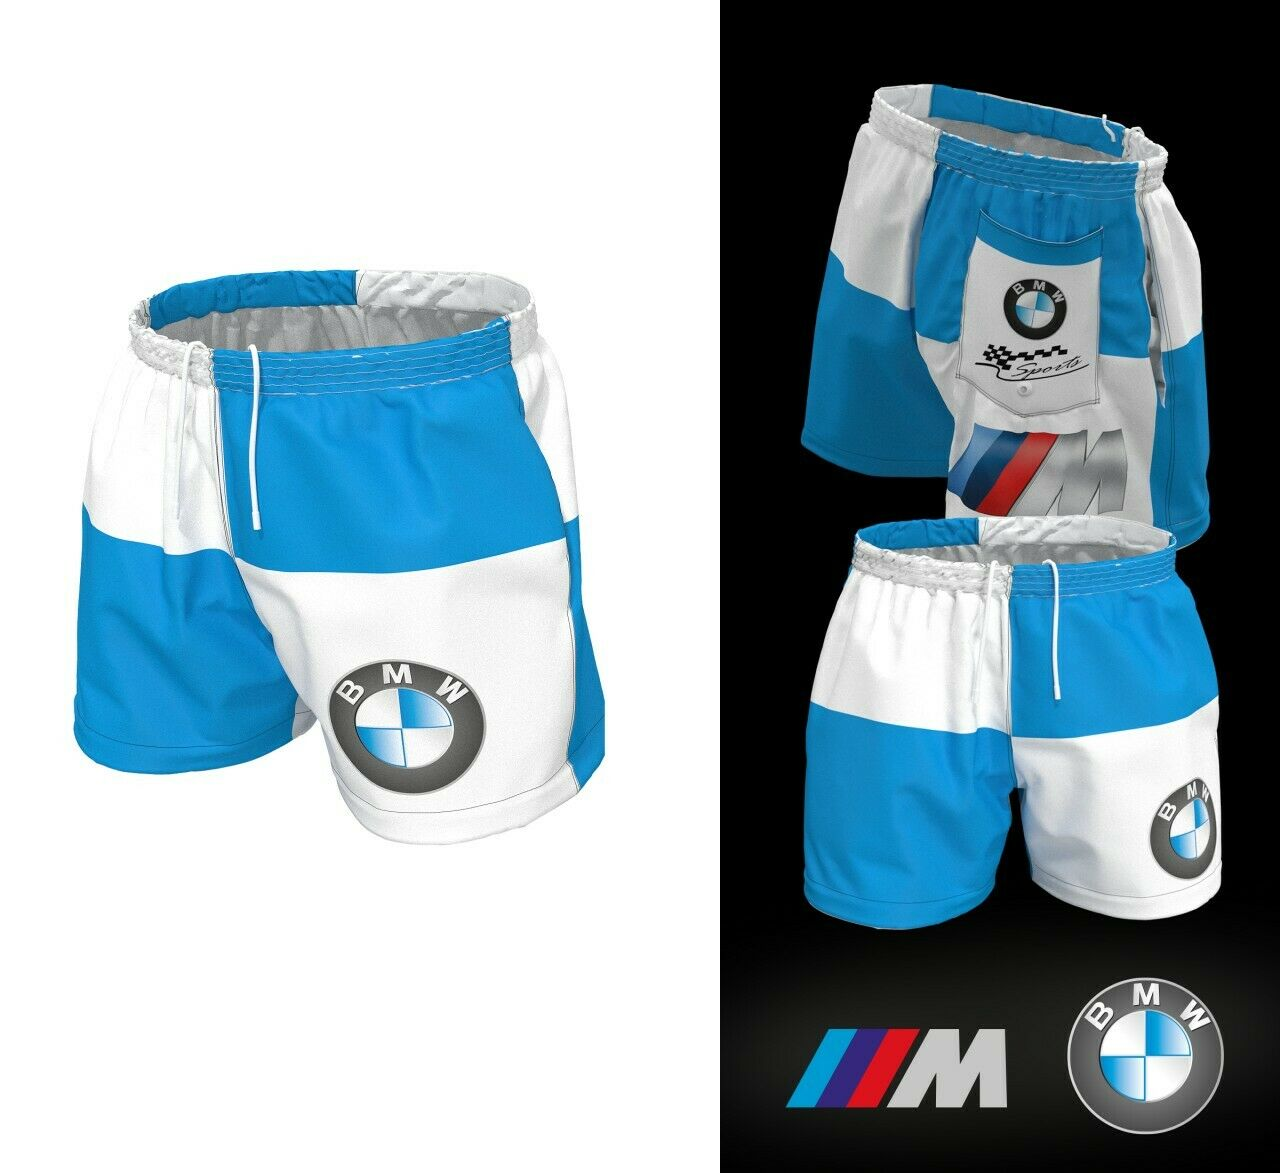 Man BMW Auto Summer Outfit bluee White Pants  Training Swimming Shorts